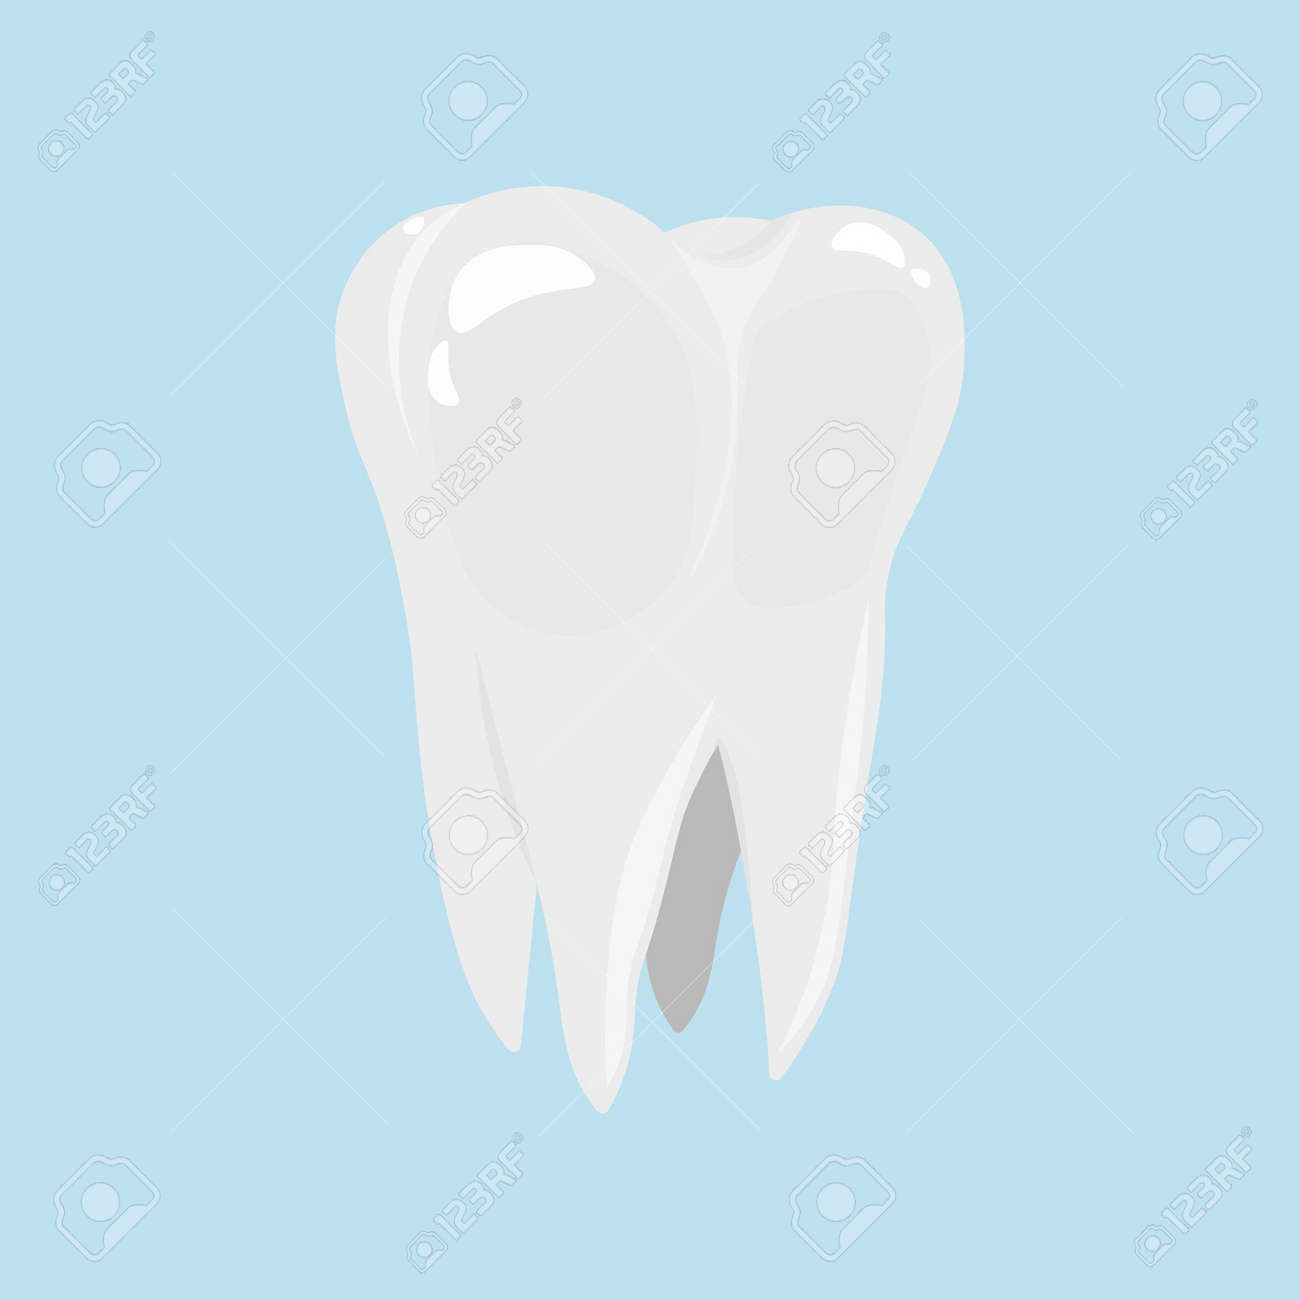 Tooth icon in cartoon style isolated on light blue background. Dental care. - 170322534